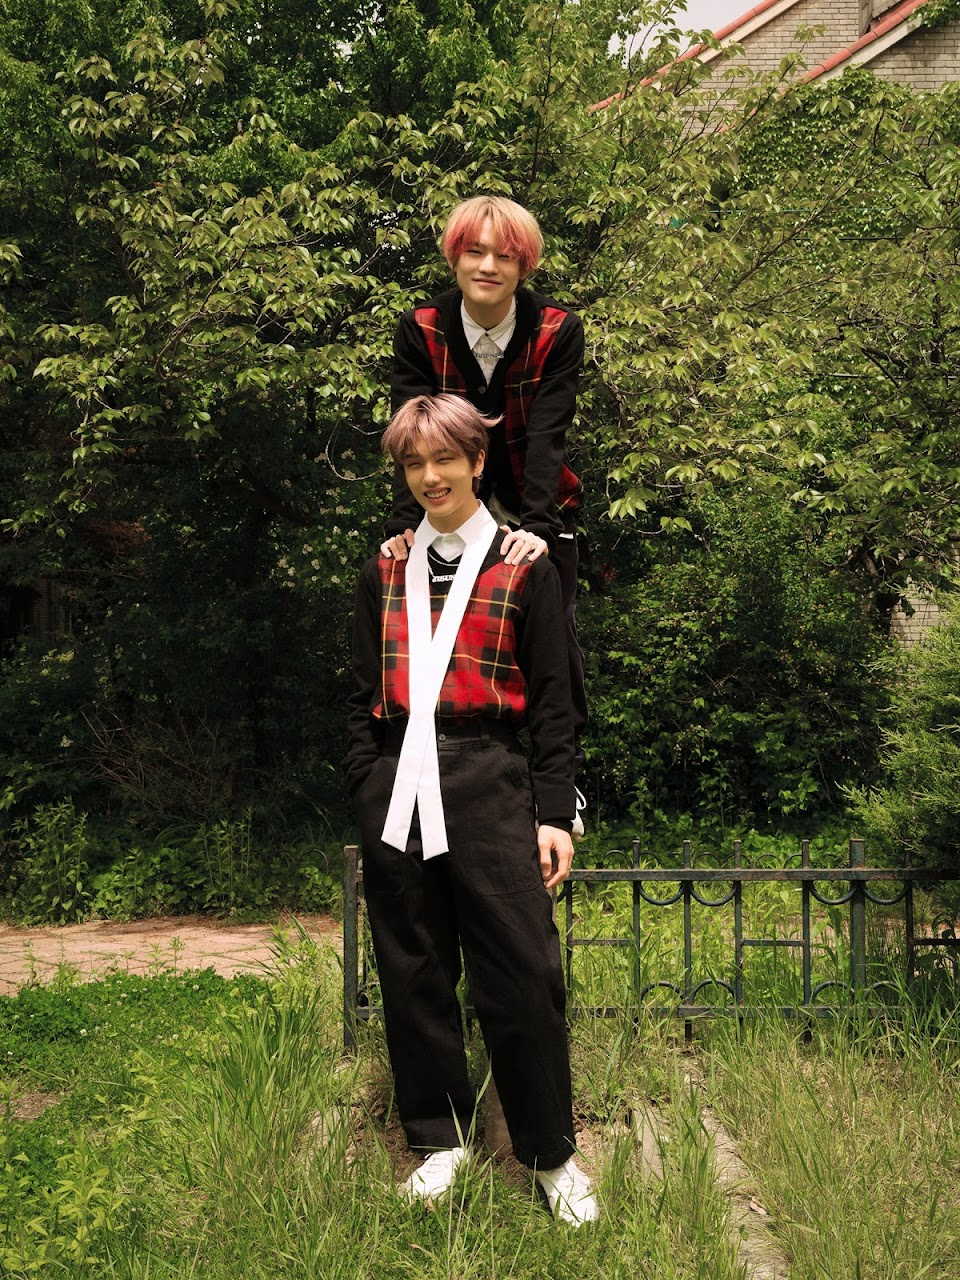 nct dream chenle jisung @NCTsmtown_DREAM